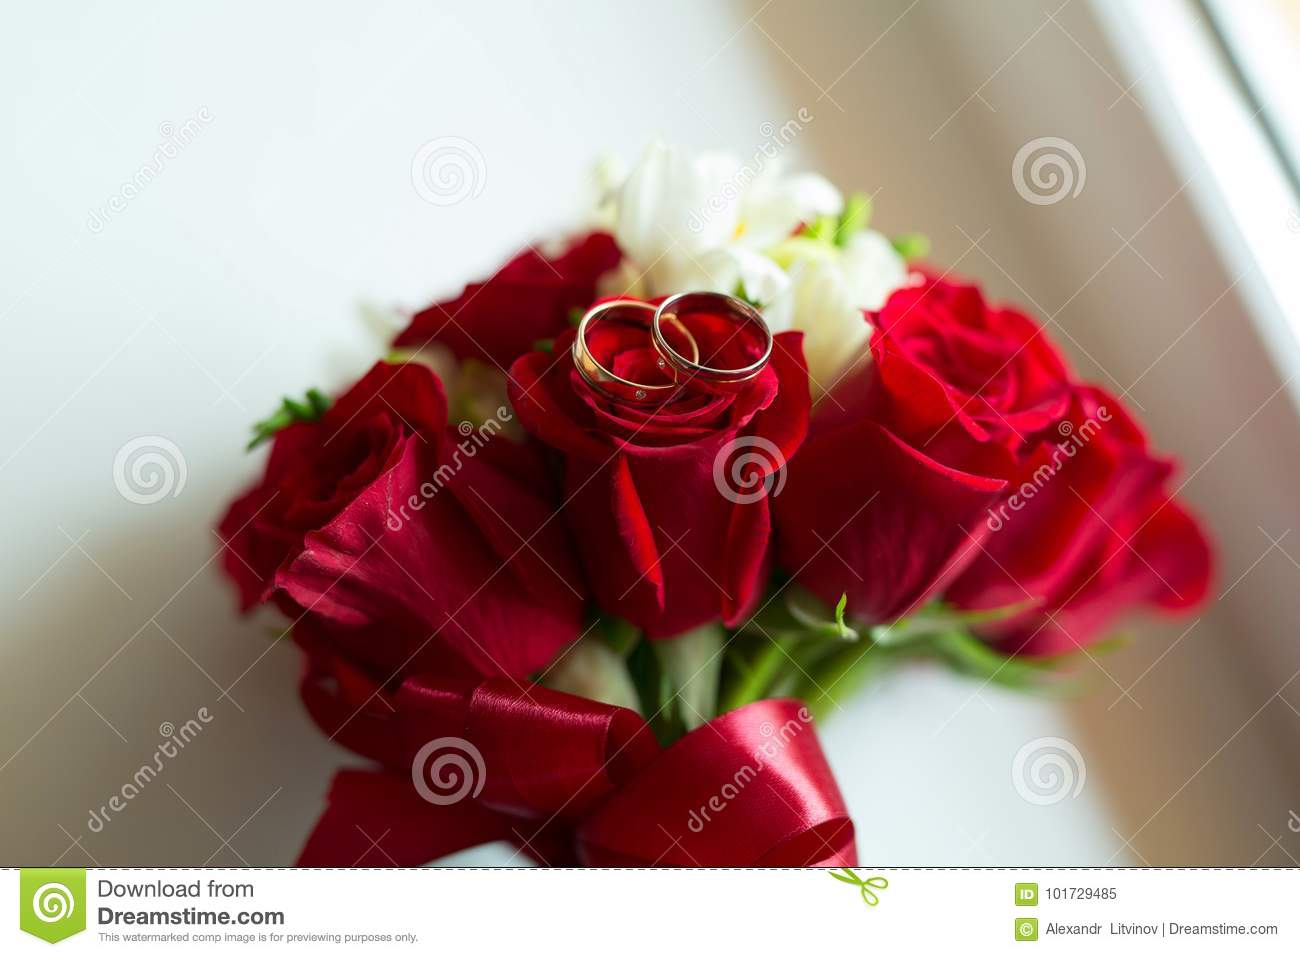 Bright red bridal bouquet of fresh flowers of red roses stock image bright red bridal bouquet of fresh flowers of red roses izmirmasajfo